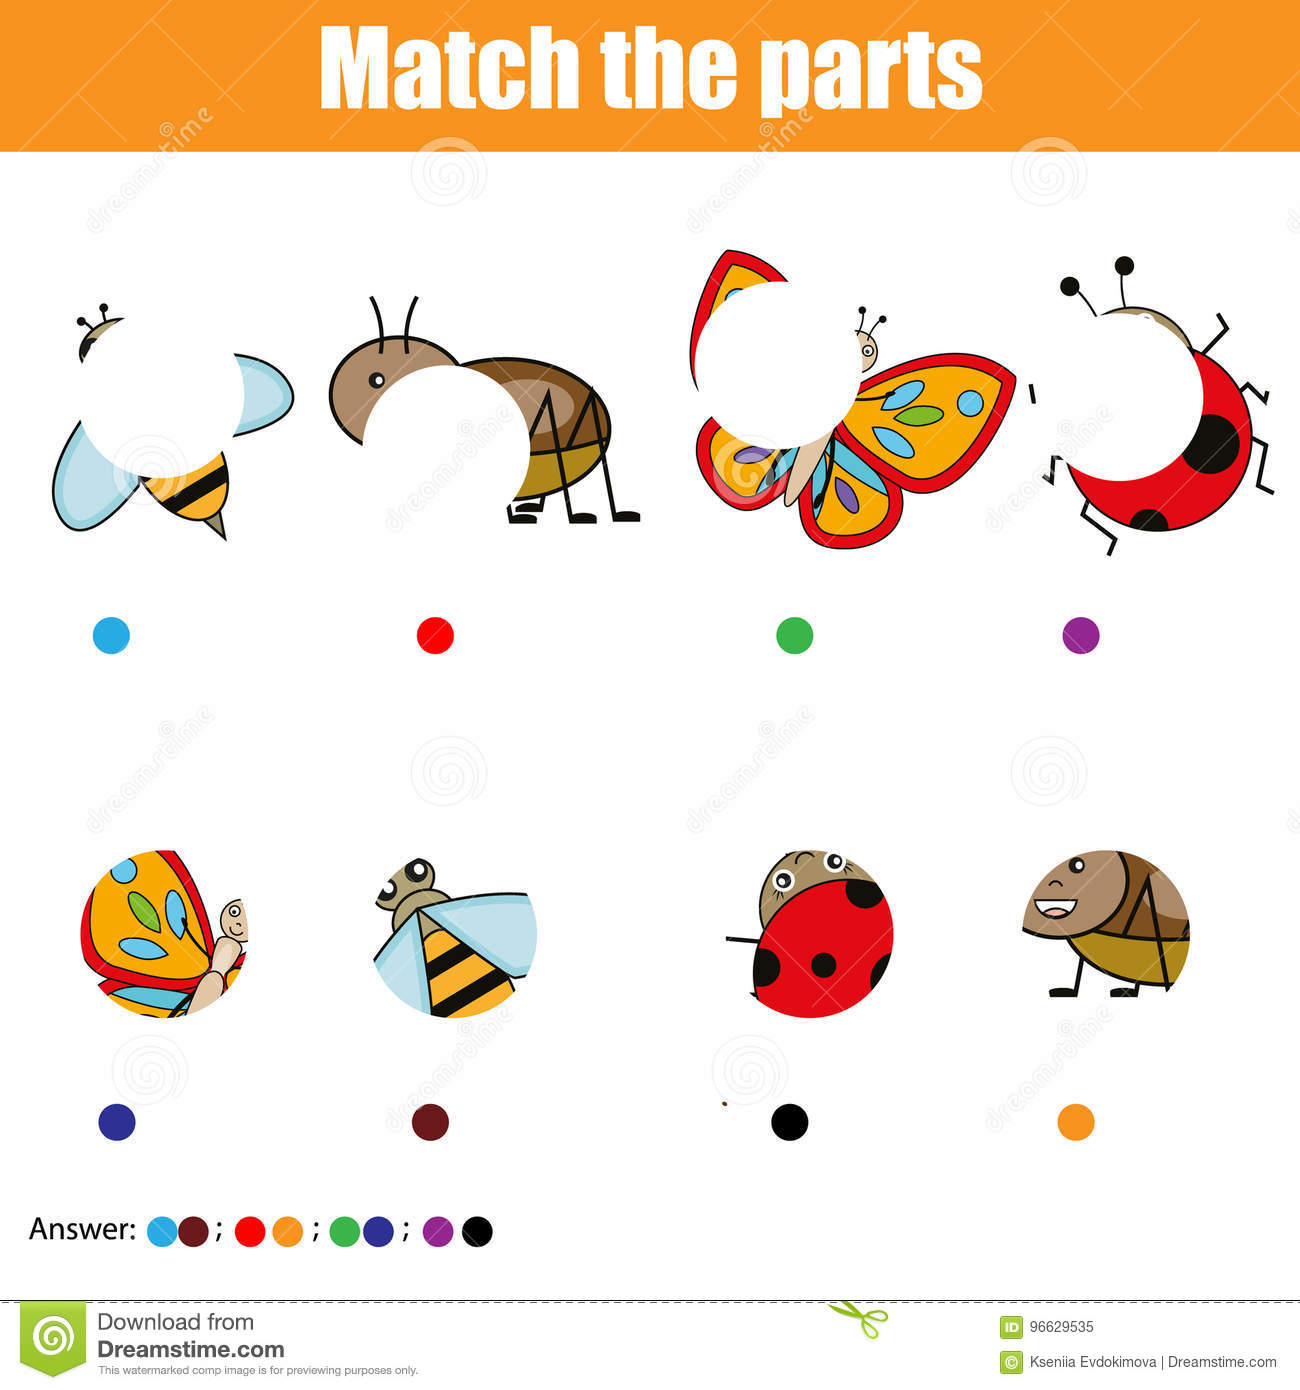 Jeu Educatif Assorti D Enfants Badine L Activite Pieces D Insectes De Match Trouvez Le Puzzle